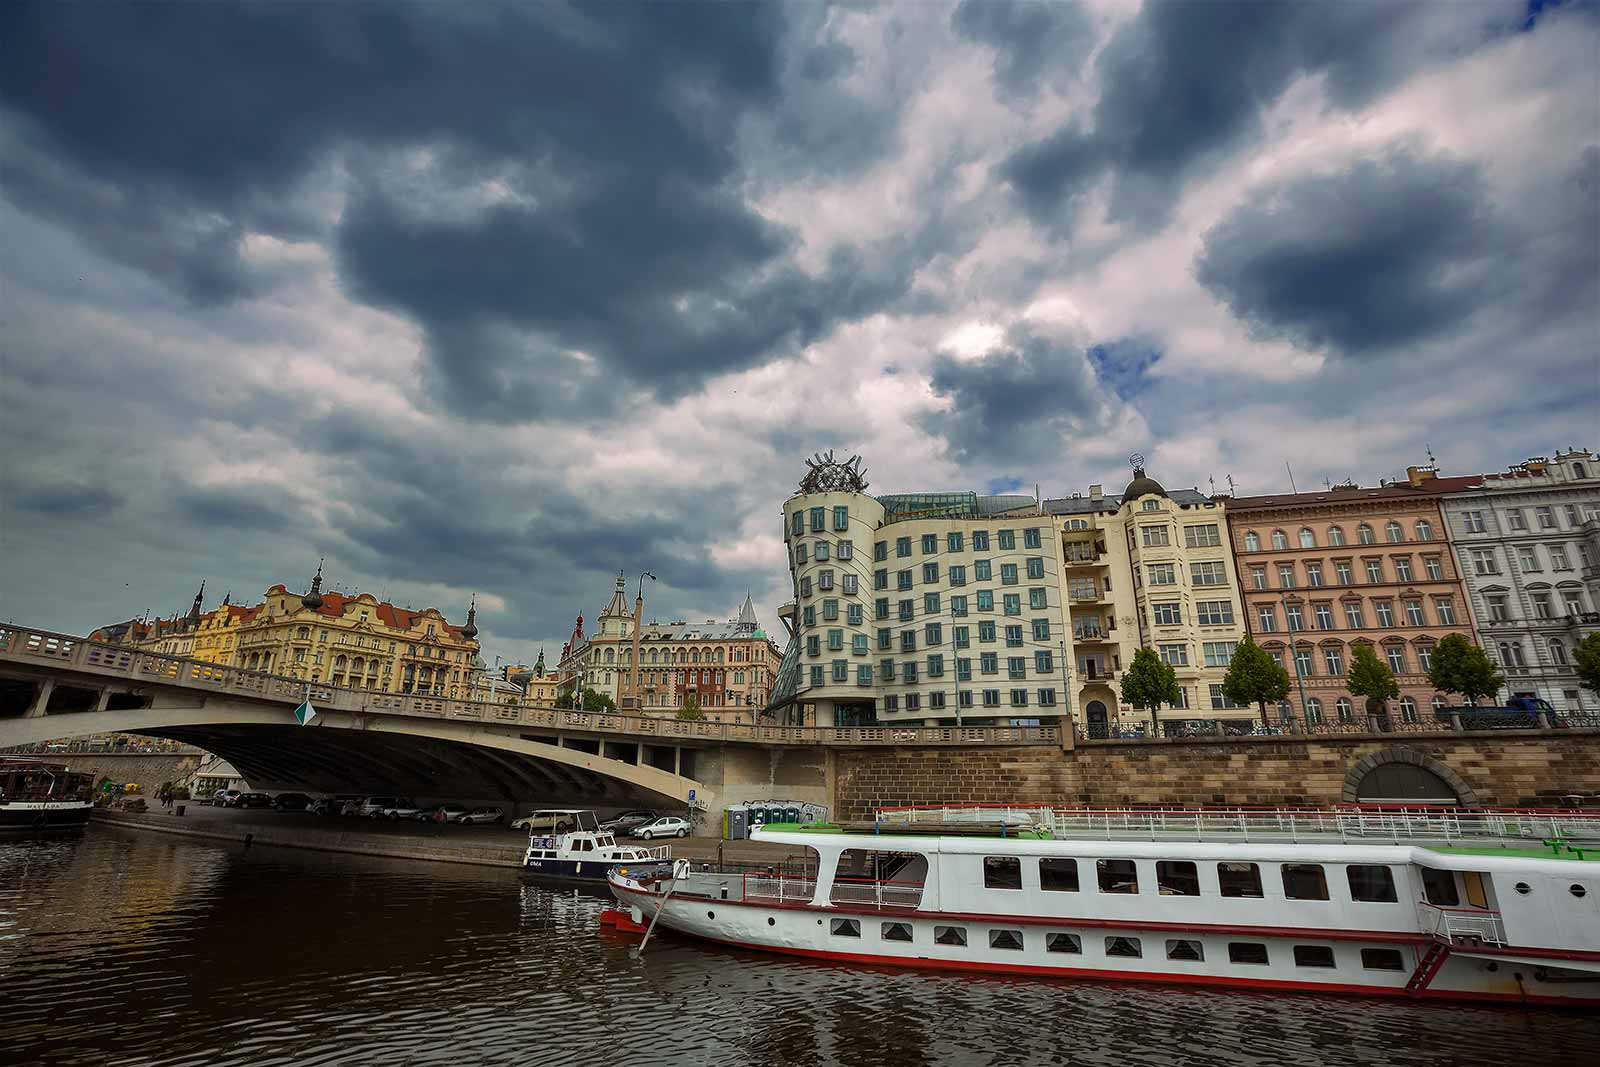 The Dancing House (designed by architects Vlado Milunic and Frank Gehry) in Prague is set by the Vltava River. Its design is unique, and especially striking in the city centre because it is a modern building surrounded by historic architecture.